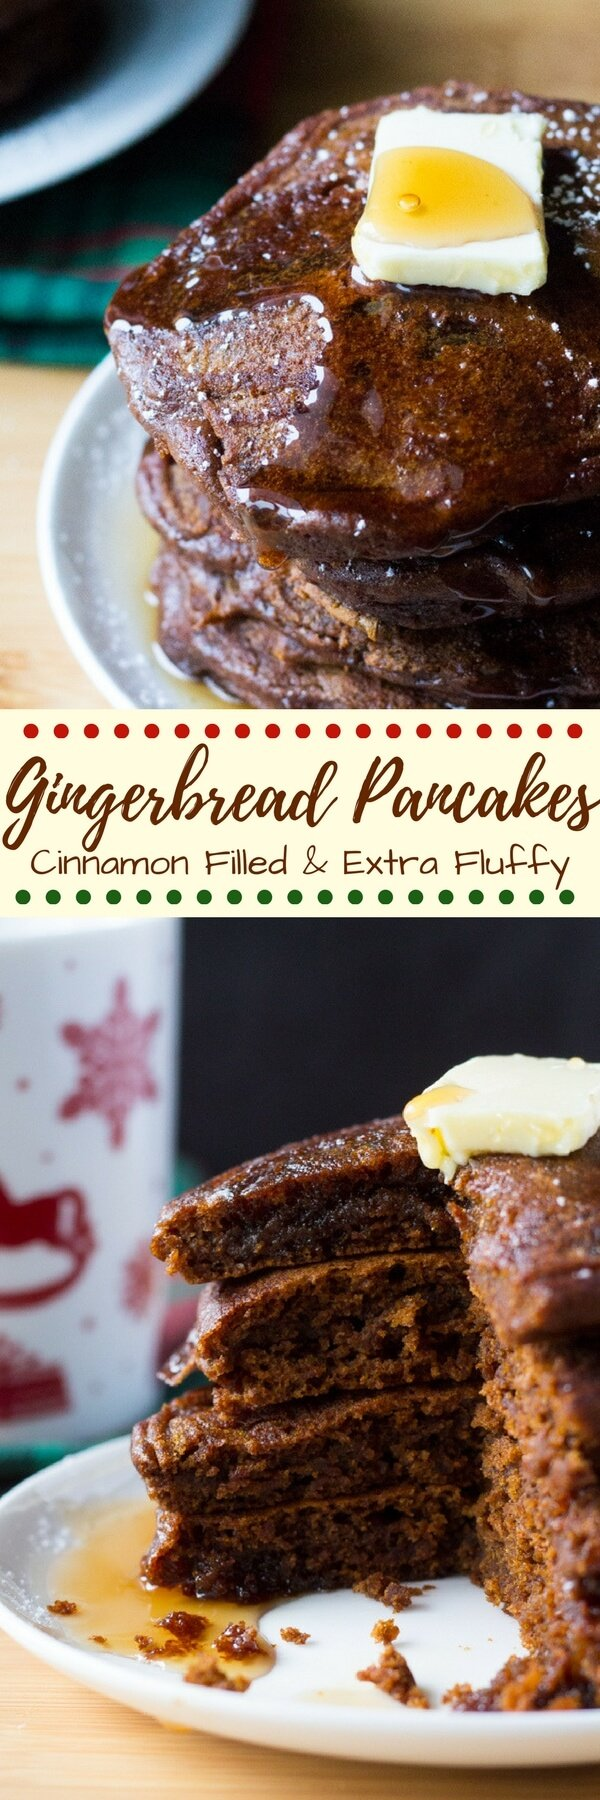 Filled with spices, super fluffy & perfectly moist - these easy Gingerbread Pancakes are the ultimate breakfast for the holidays! #gingerbreadpancakes #christmasbreakfast #holidaypancakes #gingerbread